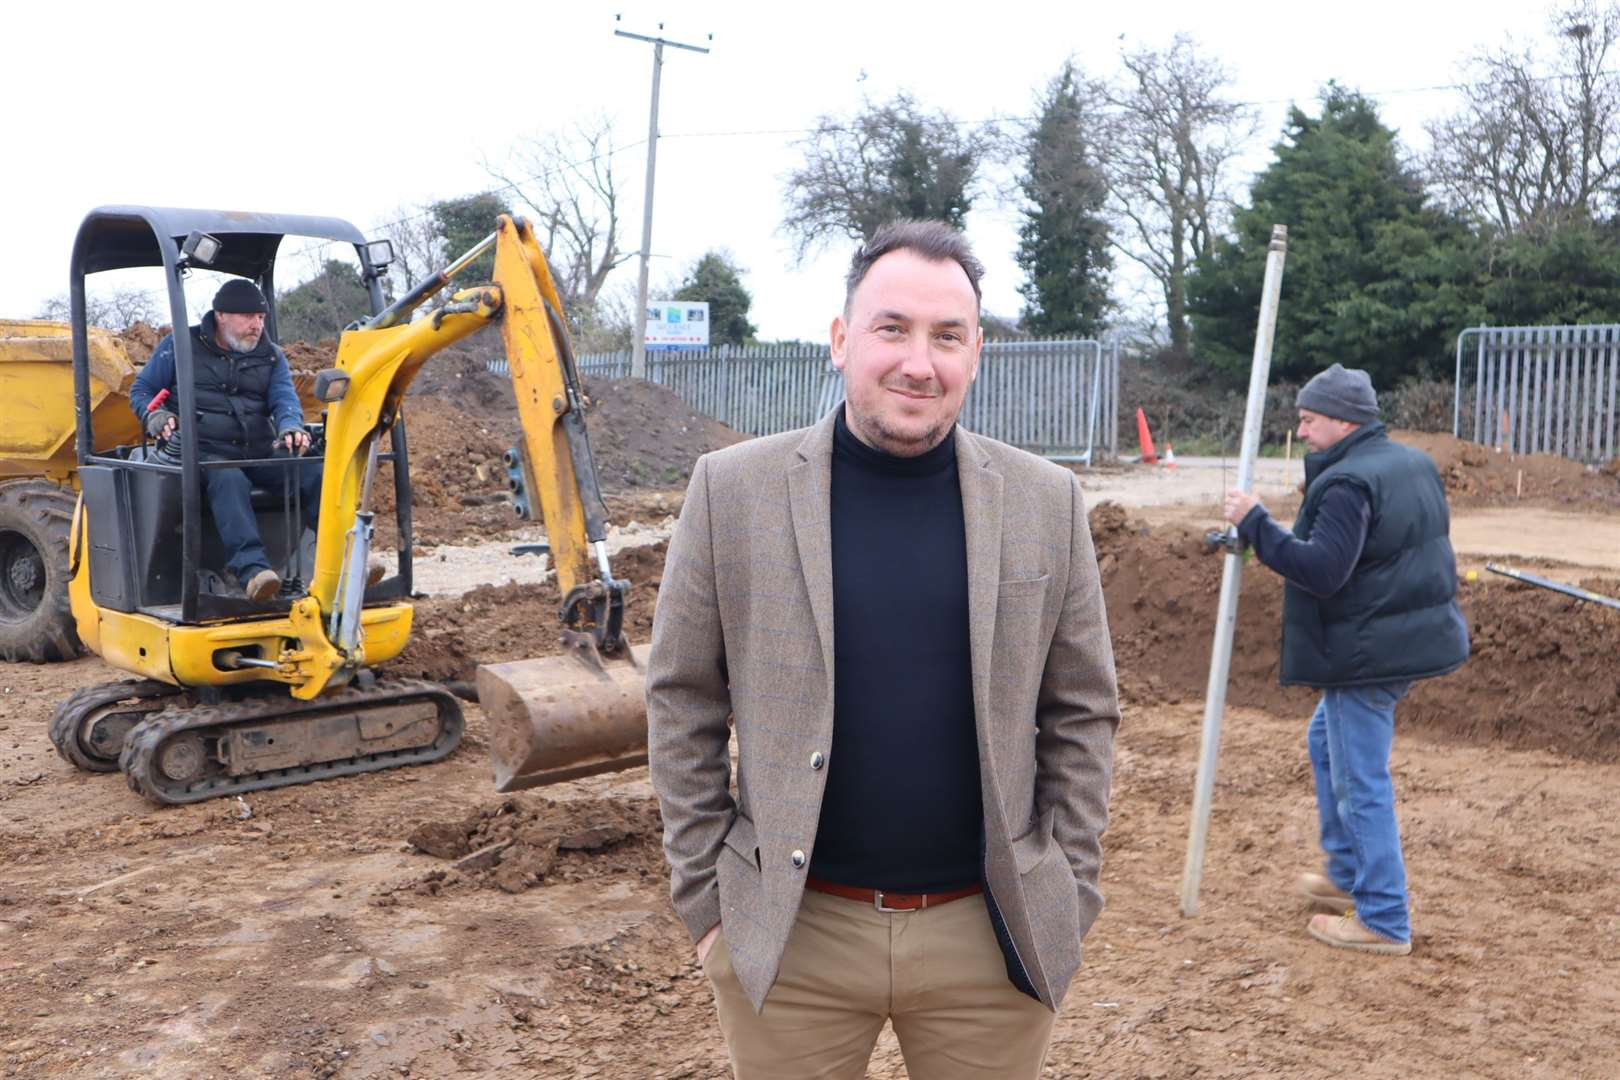 Sales manager Michael Edwards Eastchurch Holiday Centre on the Isle of Sheppey where new luxury loddges are being added. Picture: John Nurden (44752512)